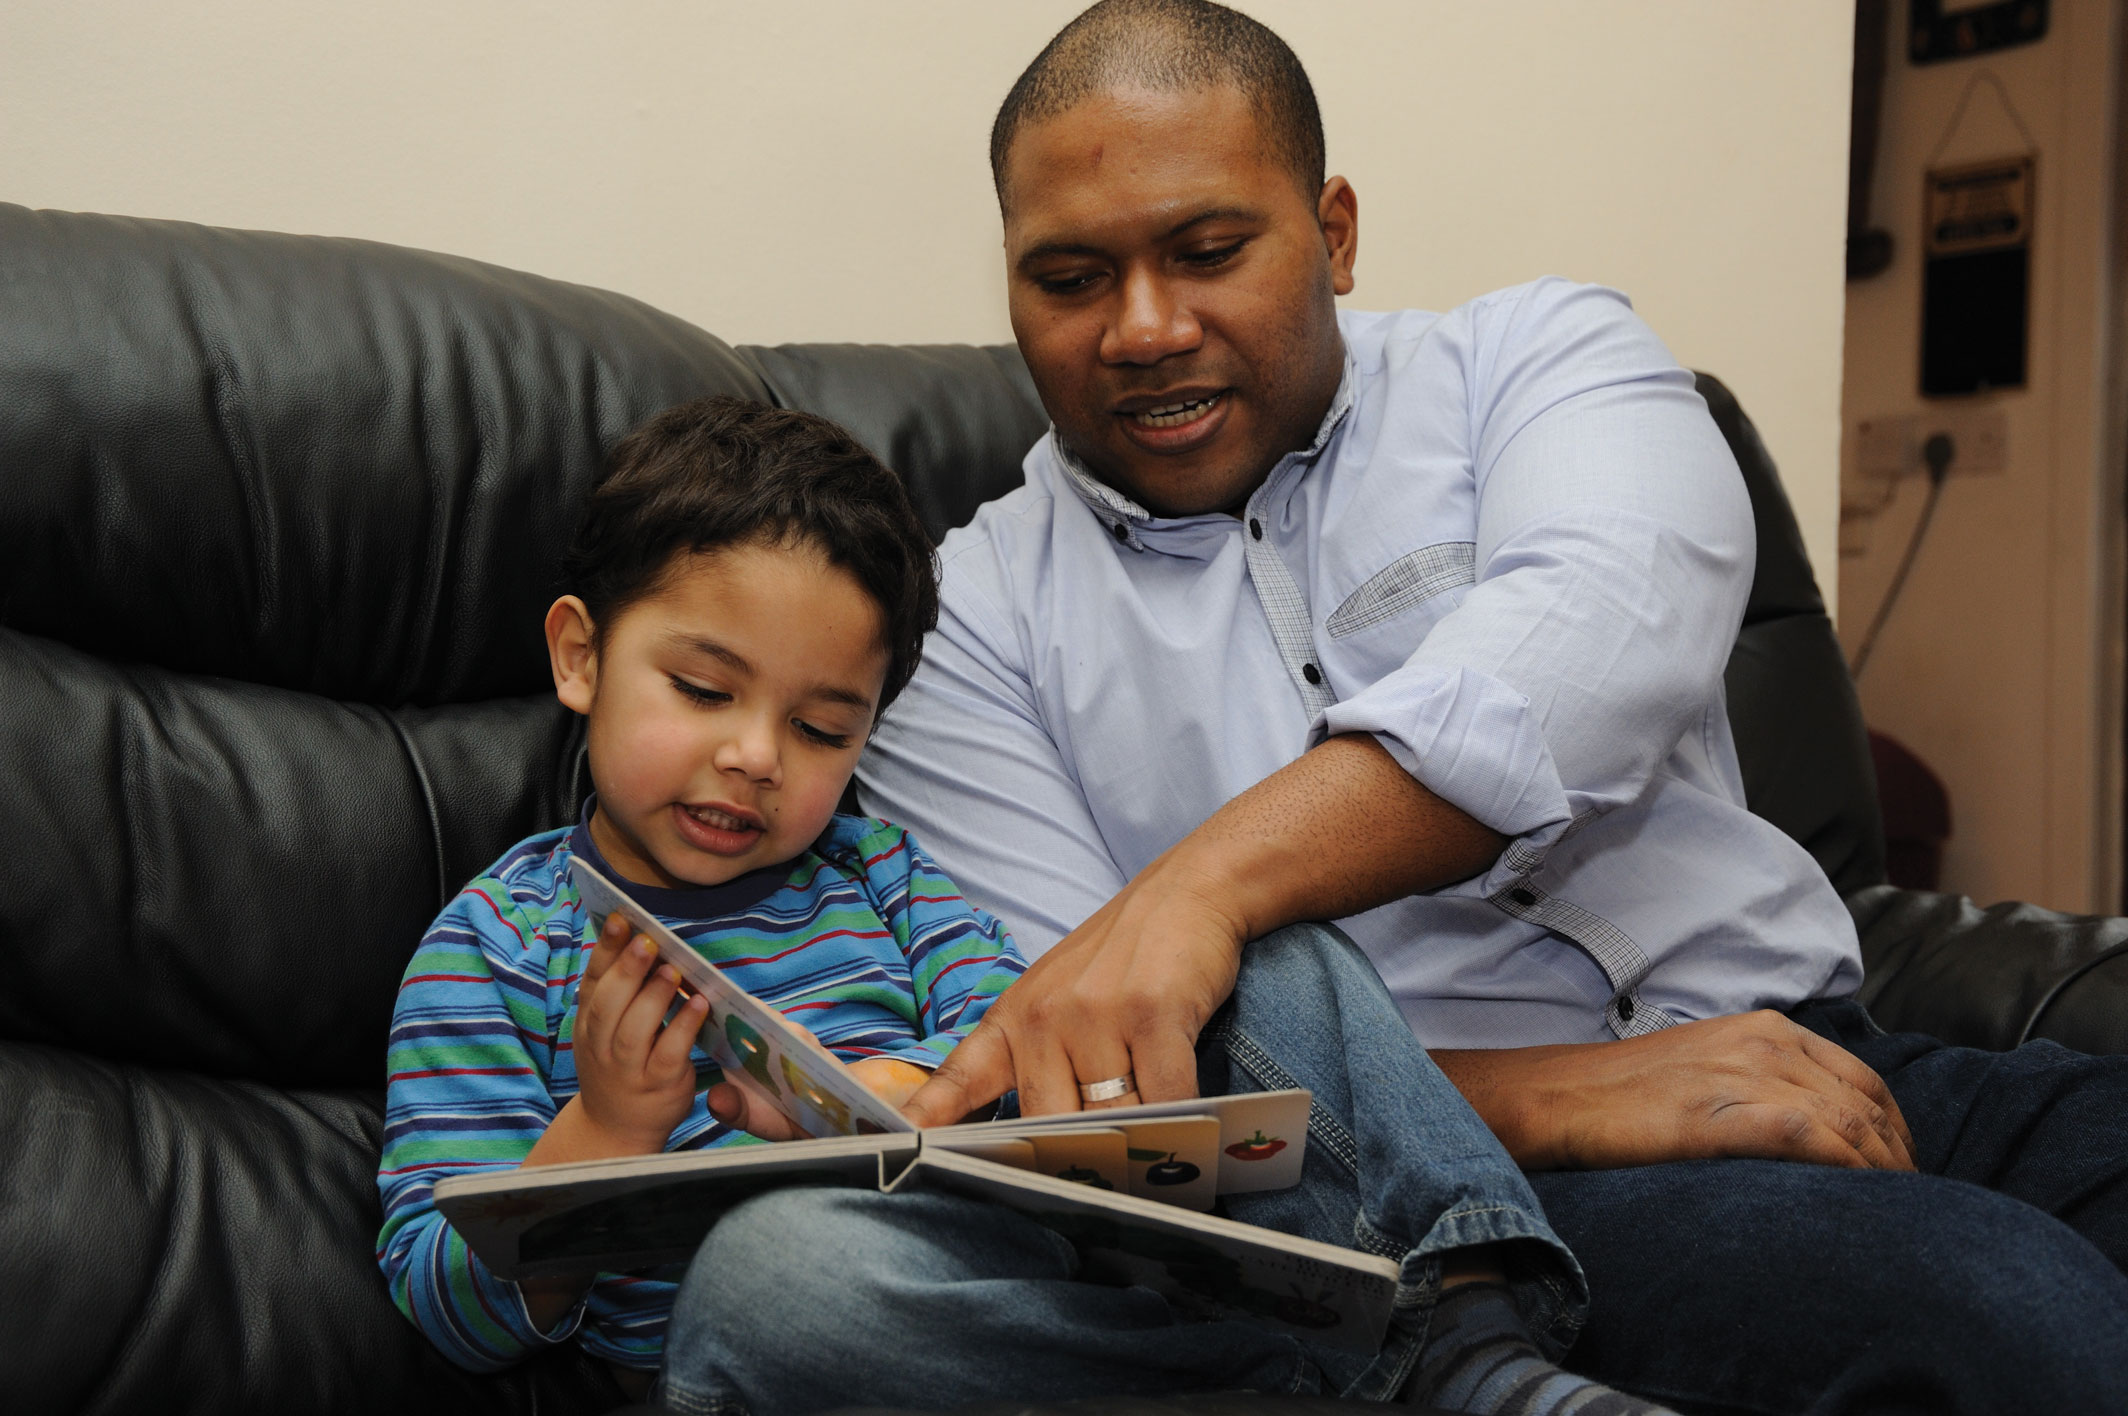 A dad reads with his son - NHS images